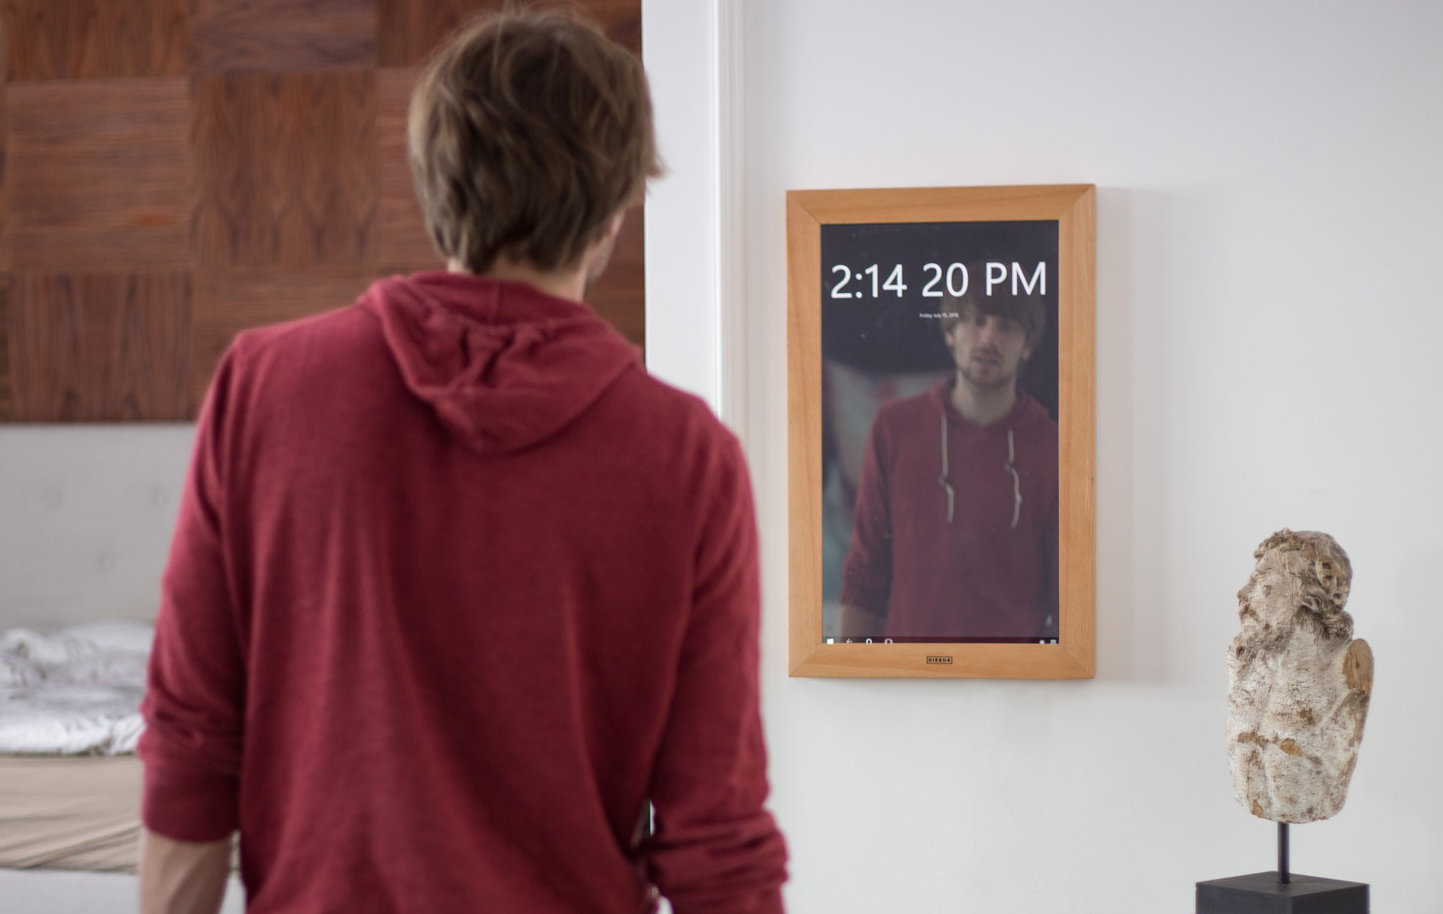 You can now buy a digital mirror running Windows 10